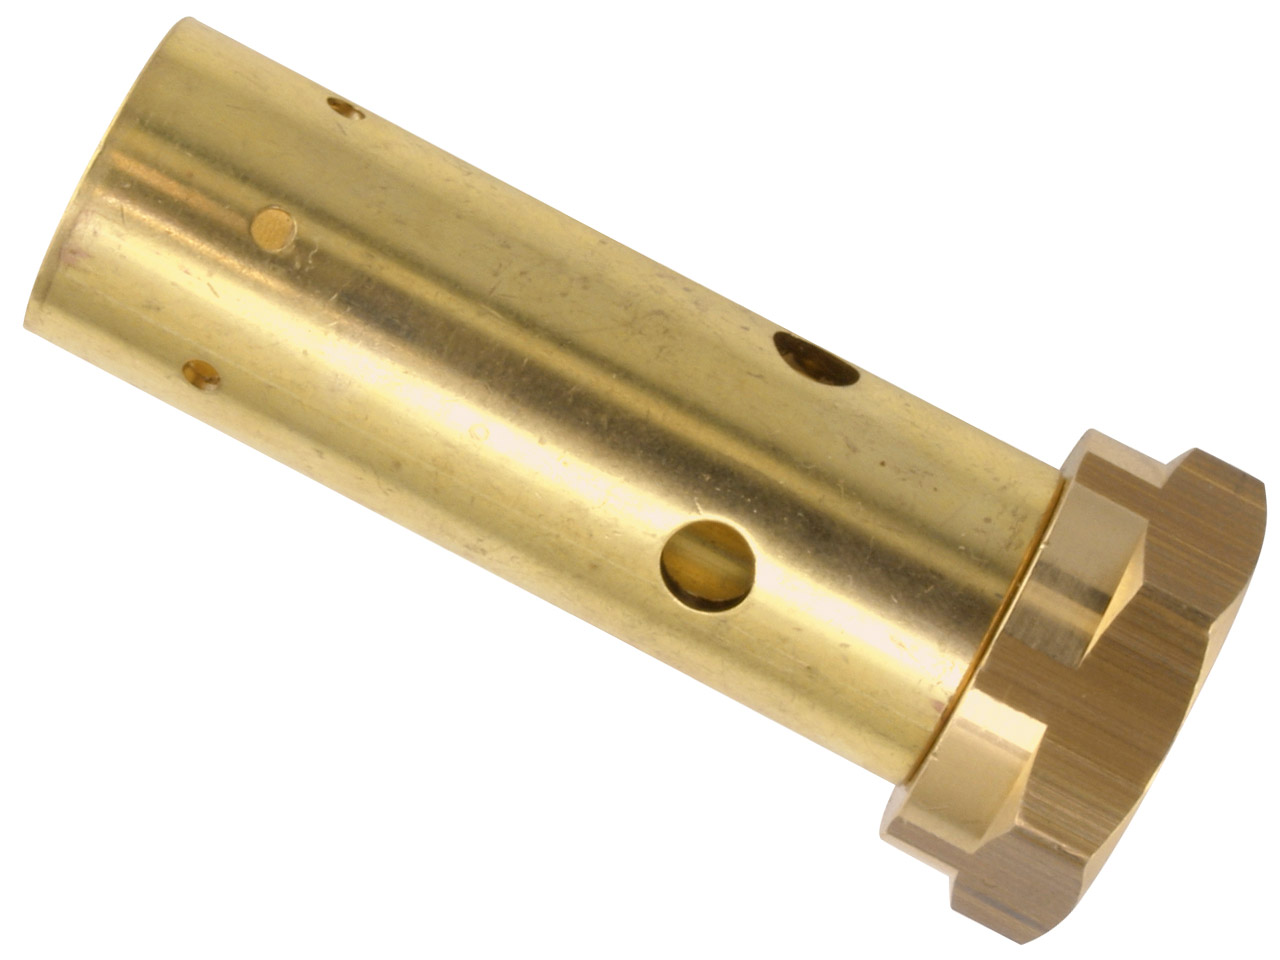 Sievert Burner 3938, 17mm Pin Point